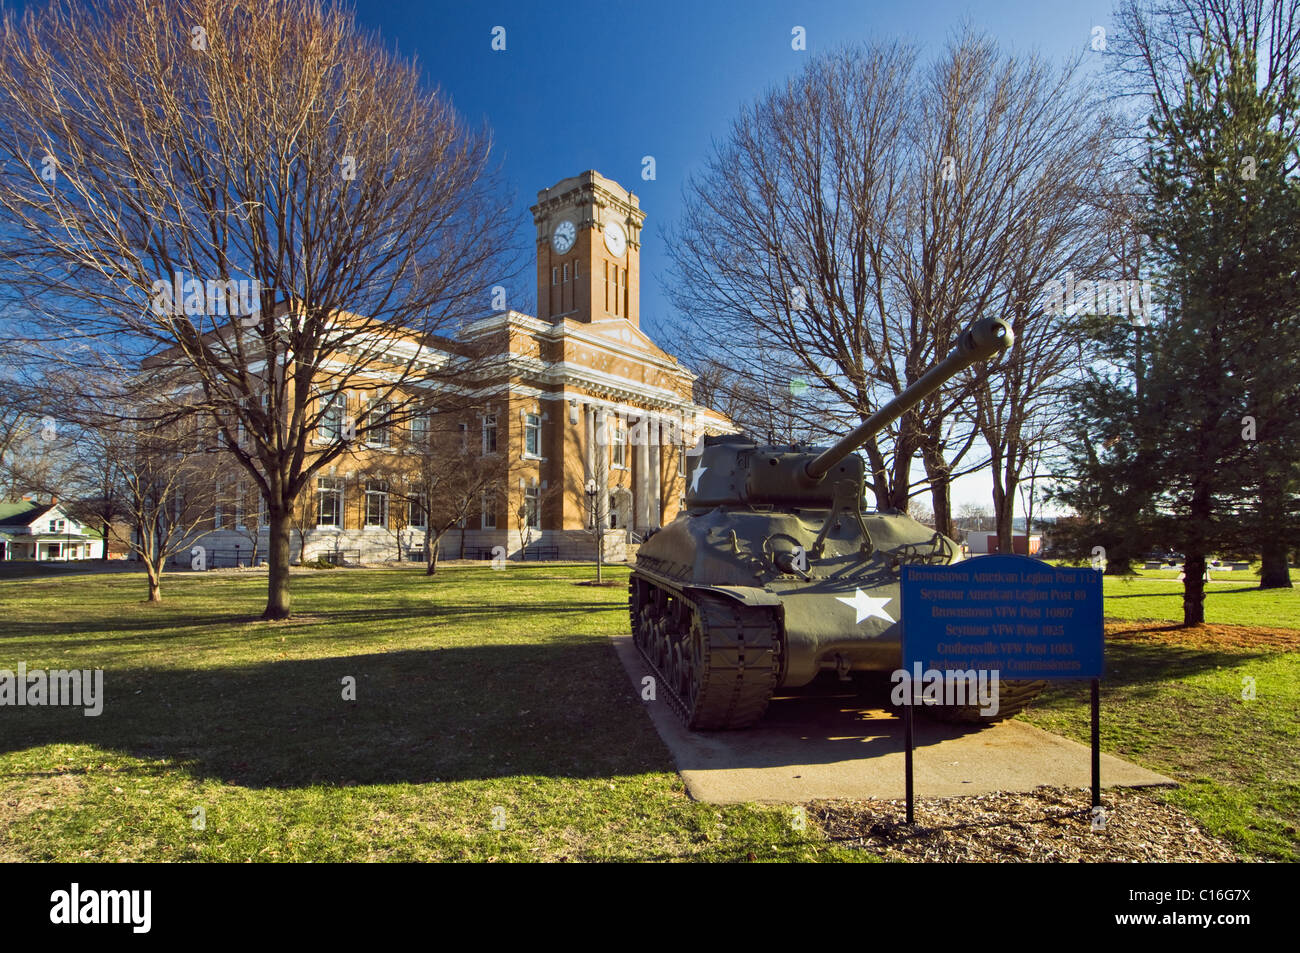 Jackson County Courthouse on the Square in Brownstown, Indiana - Stock Image